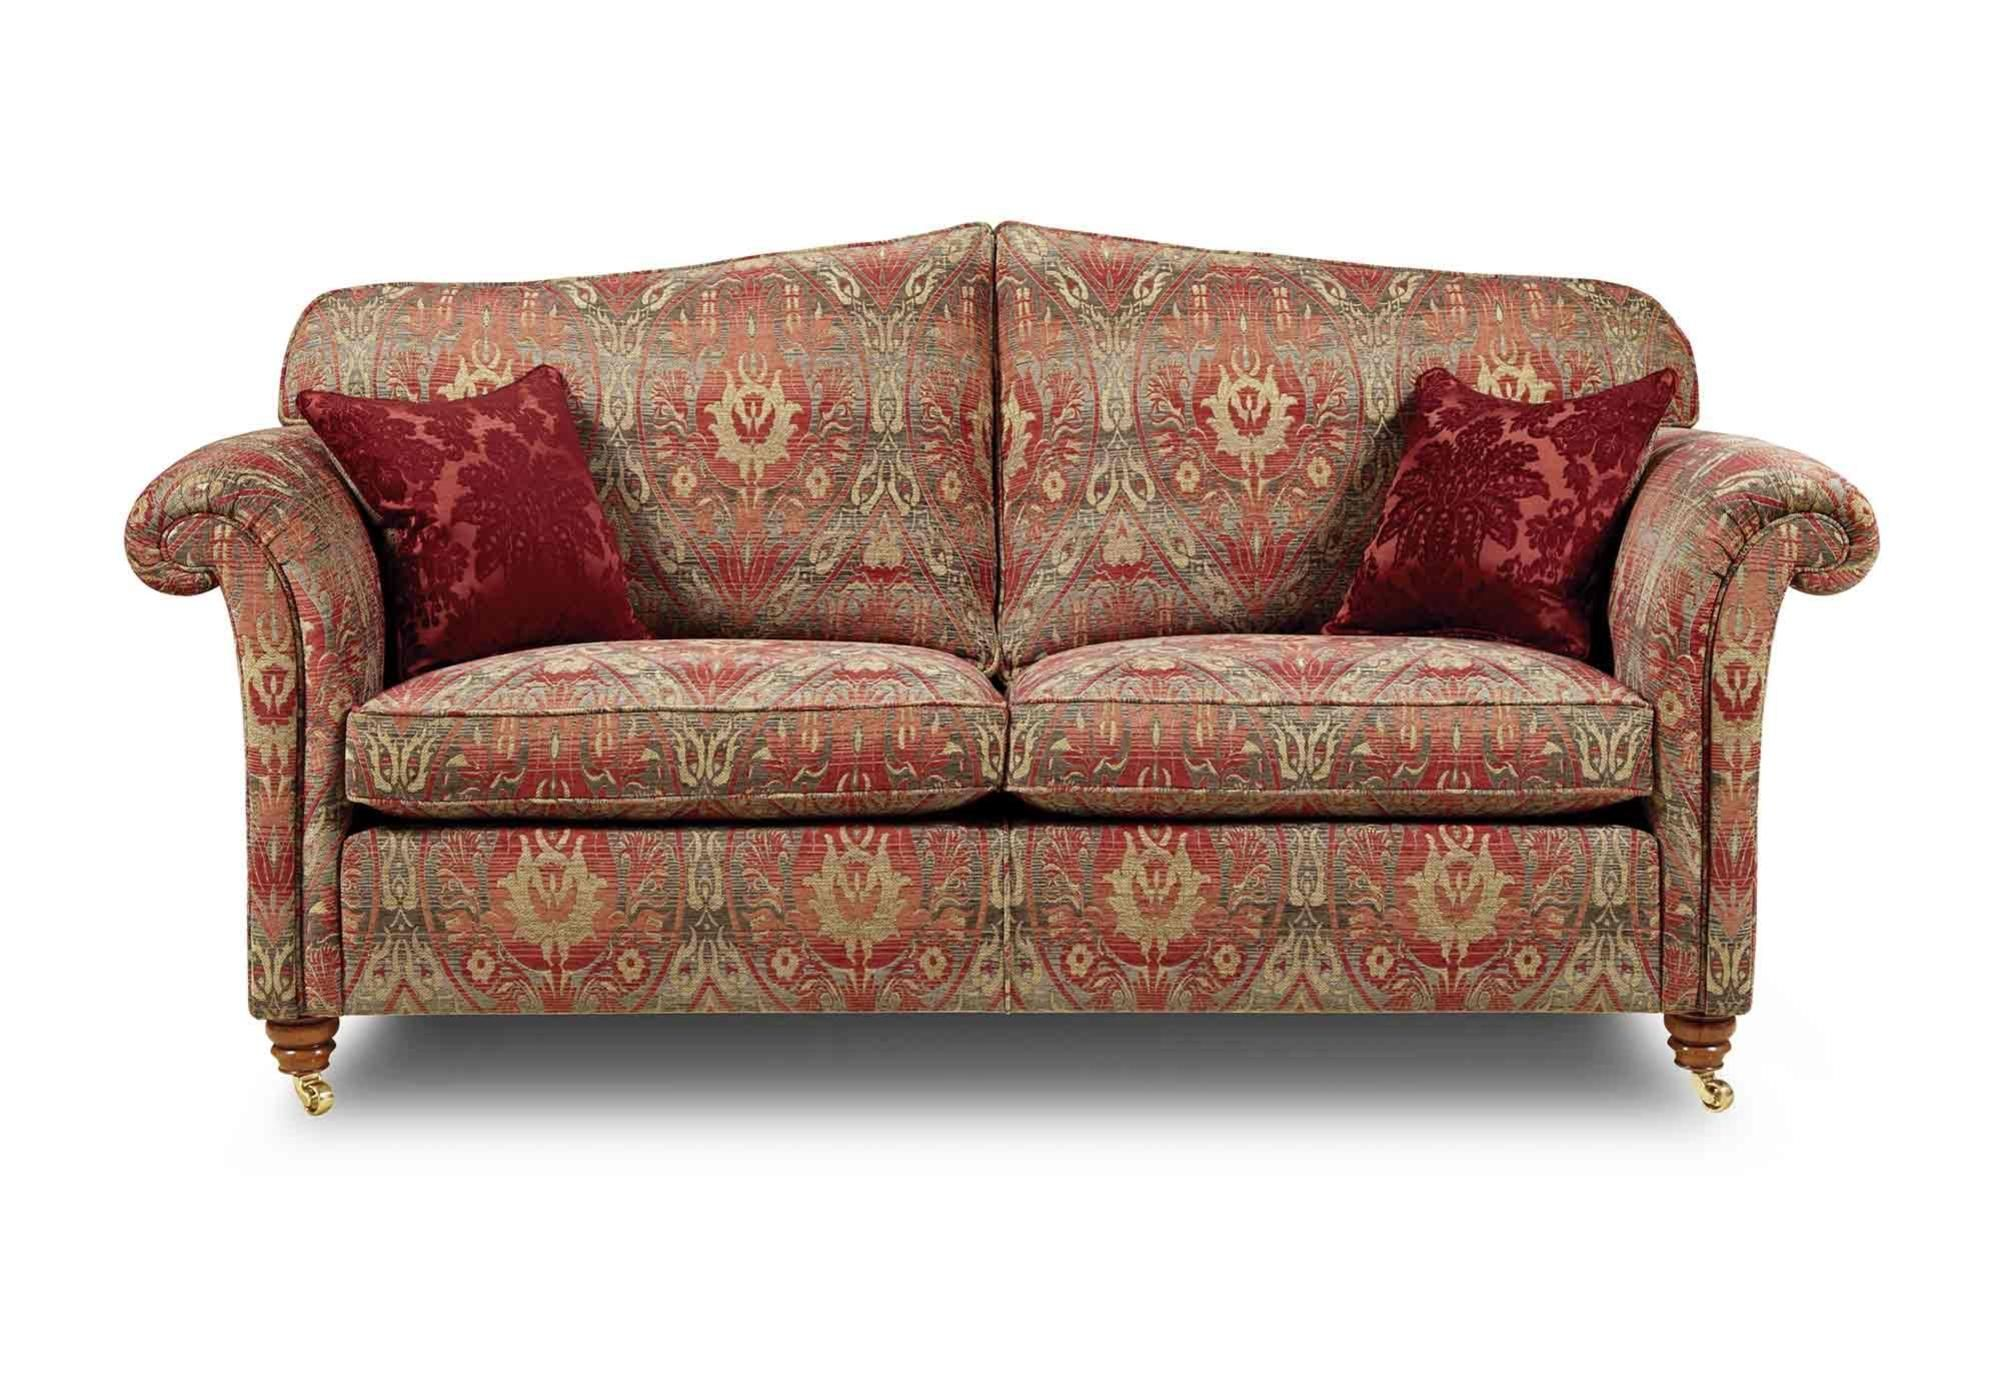 Duresta Mayfair Large 4 Seater Sofa at Furniture Village ...